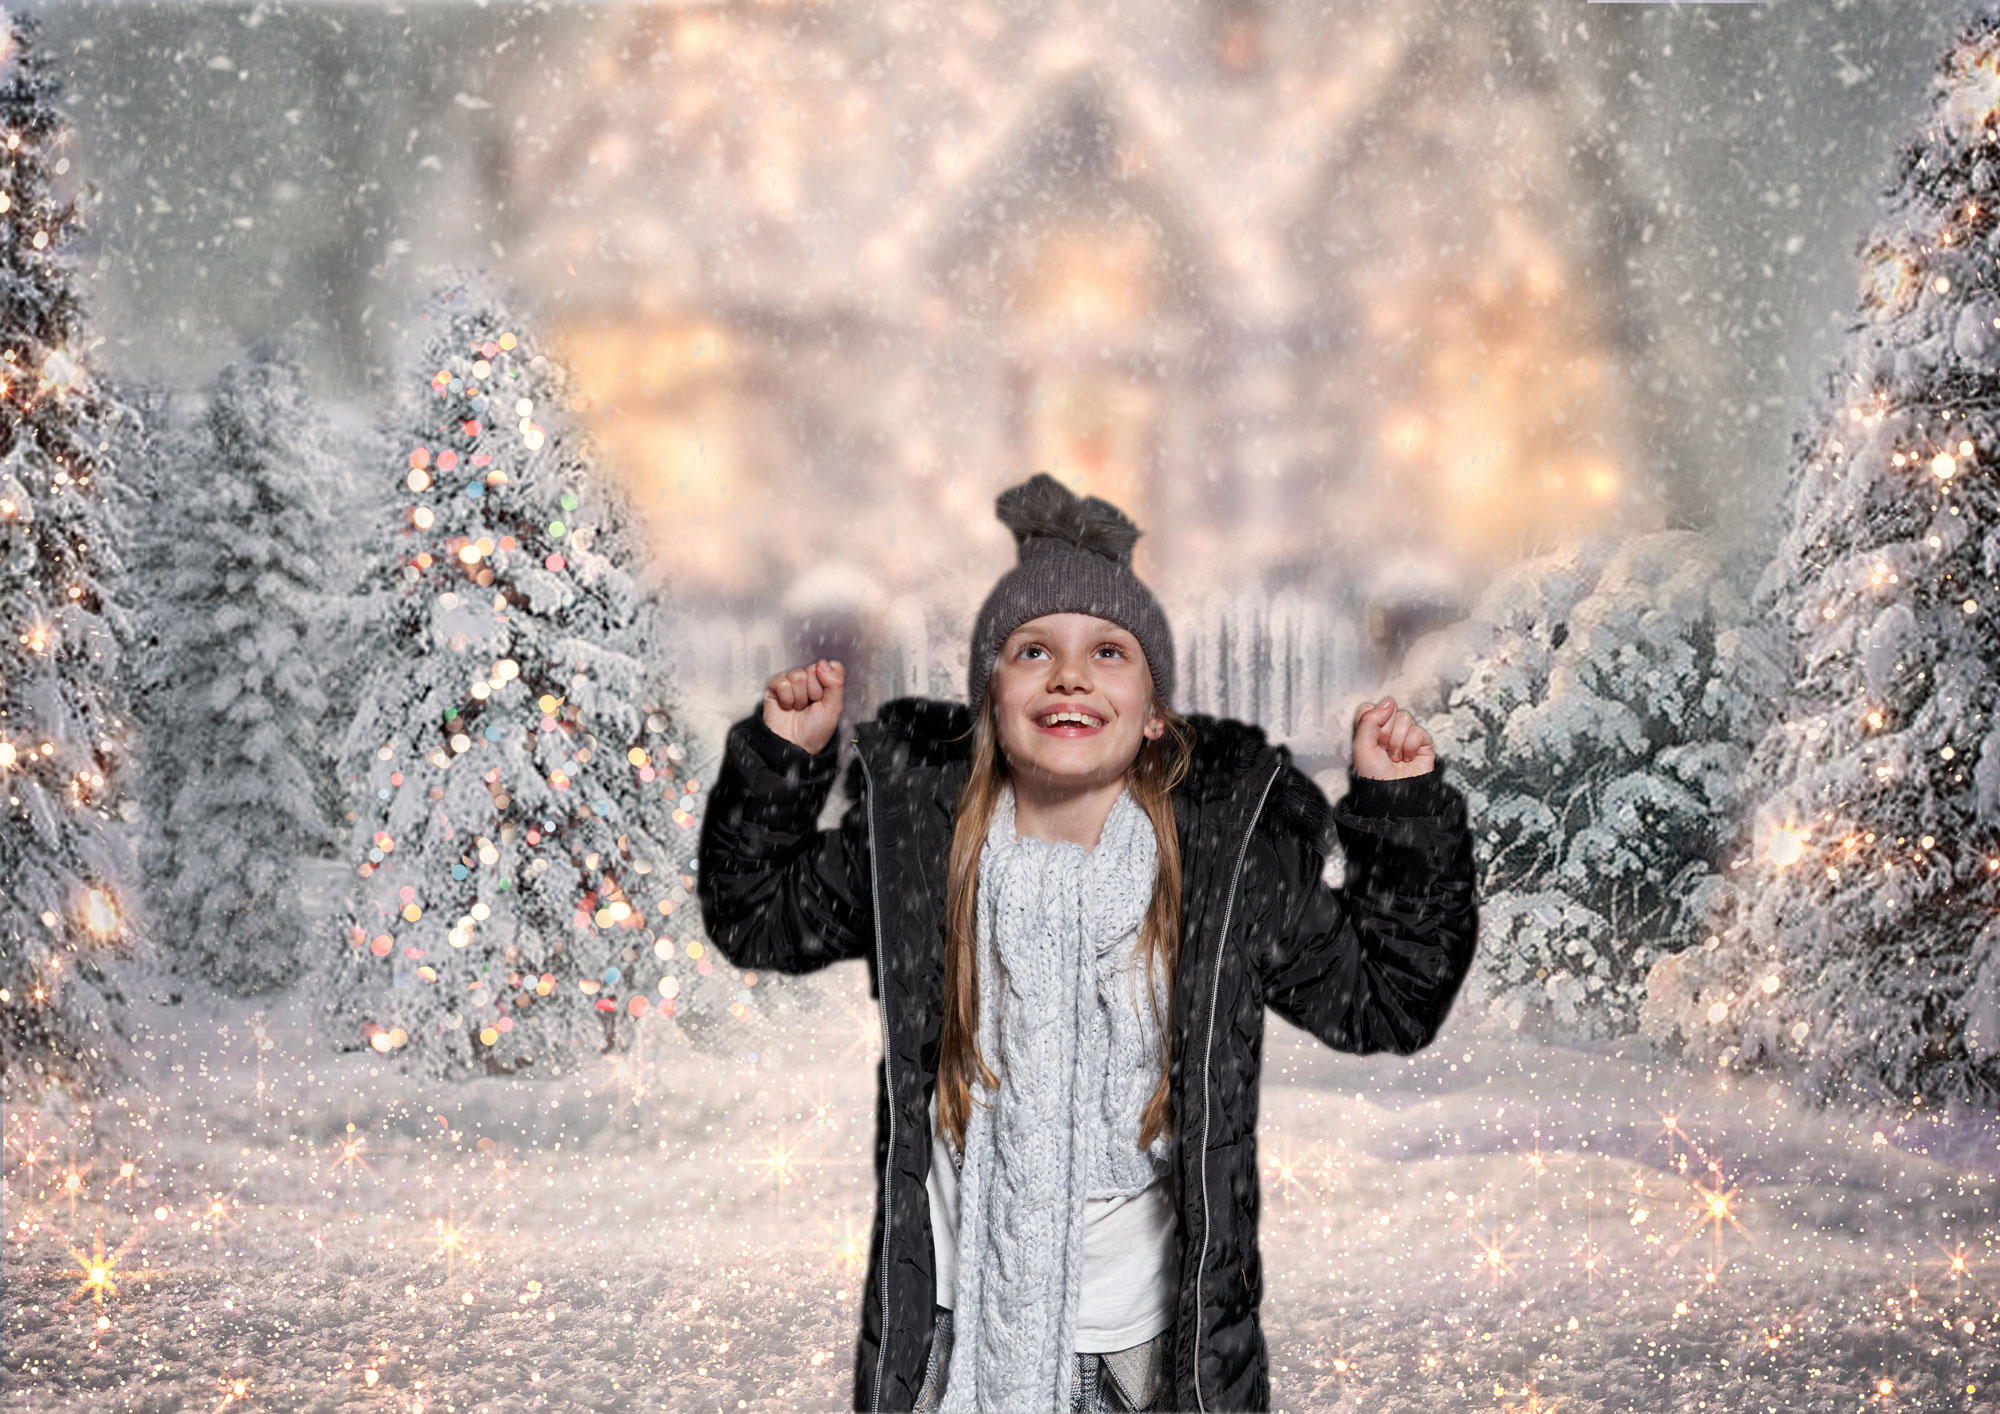 child exceited in Christmas snowing scene